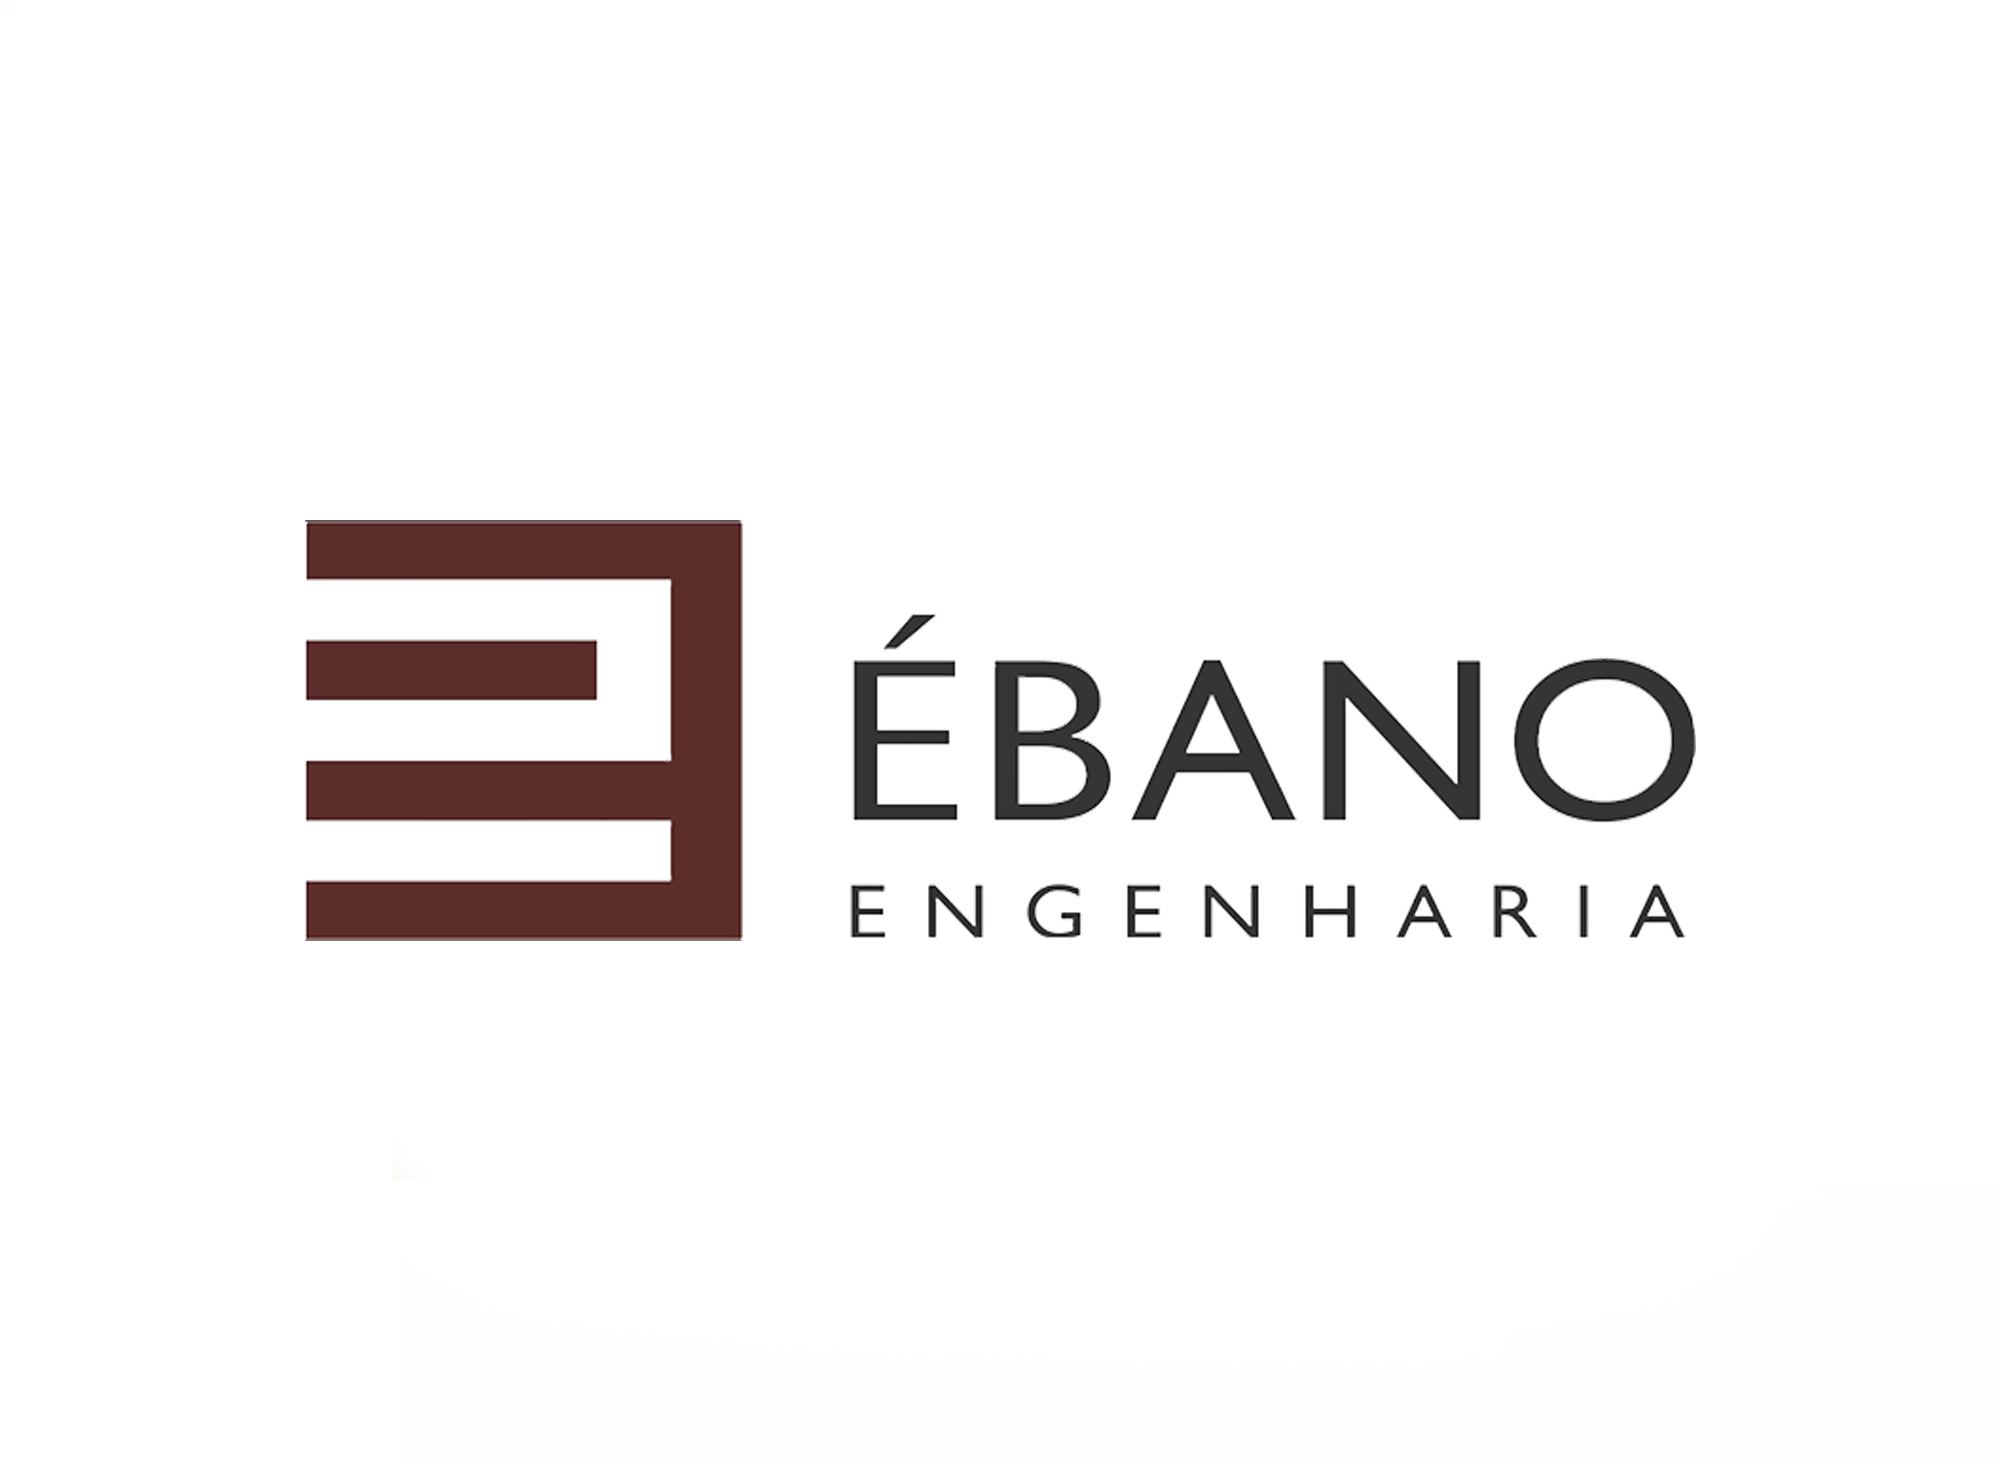 ebano-engenharia-cliente-agencia-diretriz-digital-marketing-fortaleza